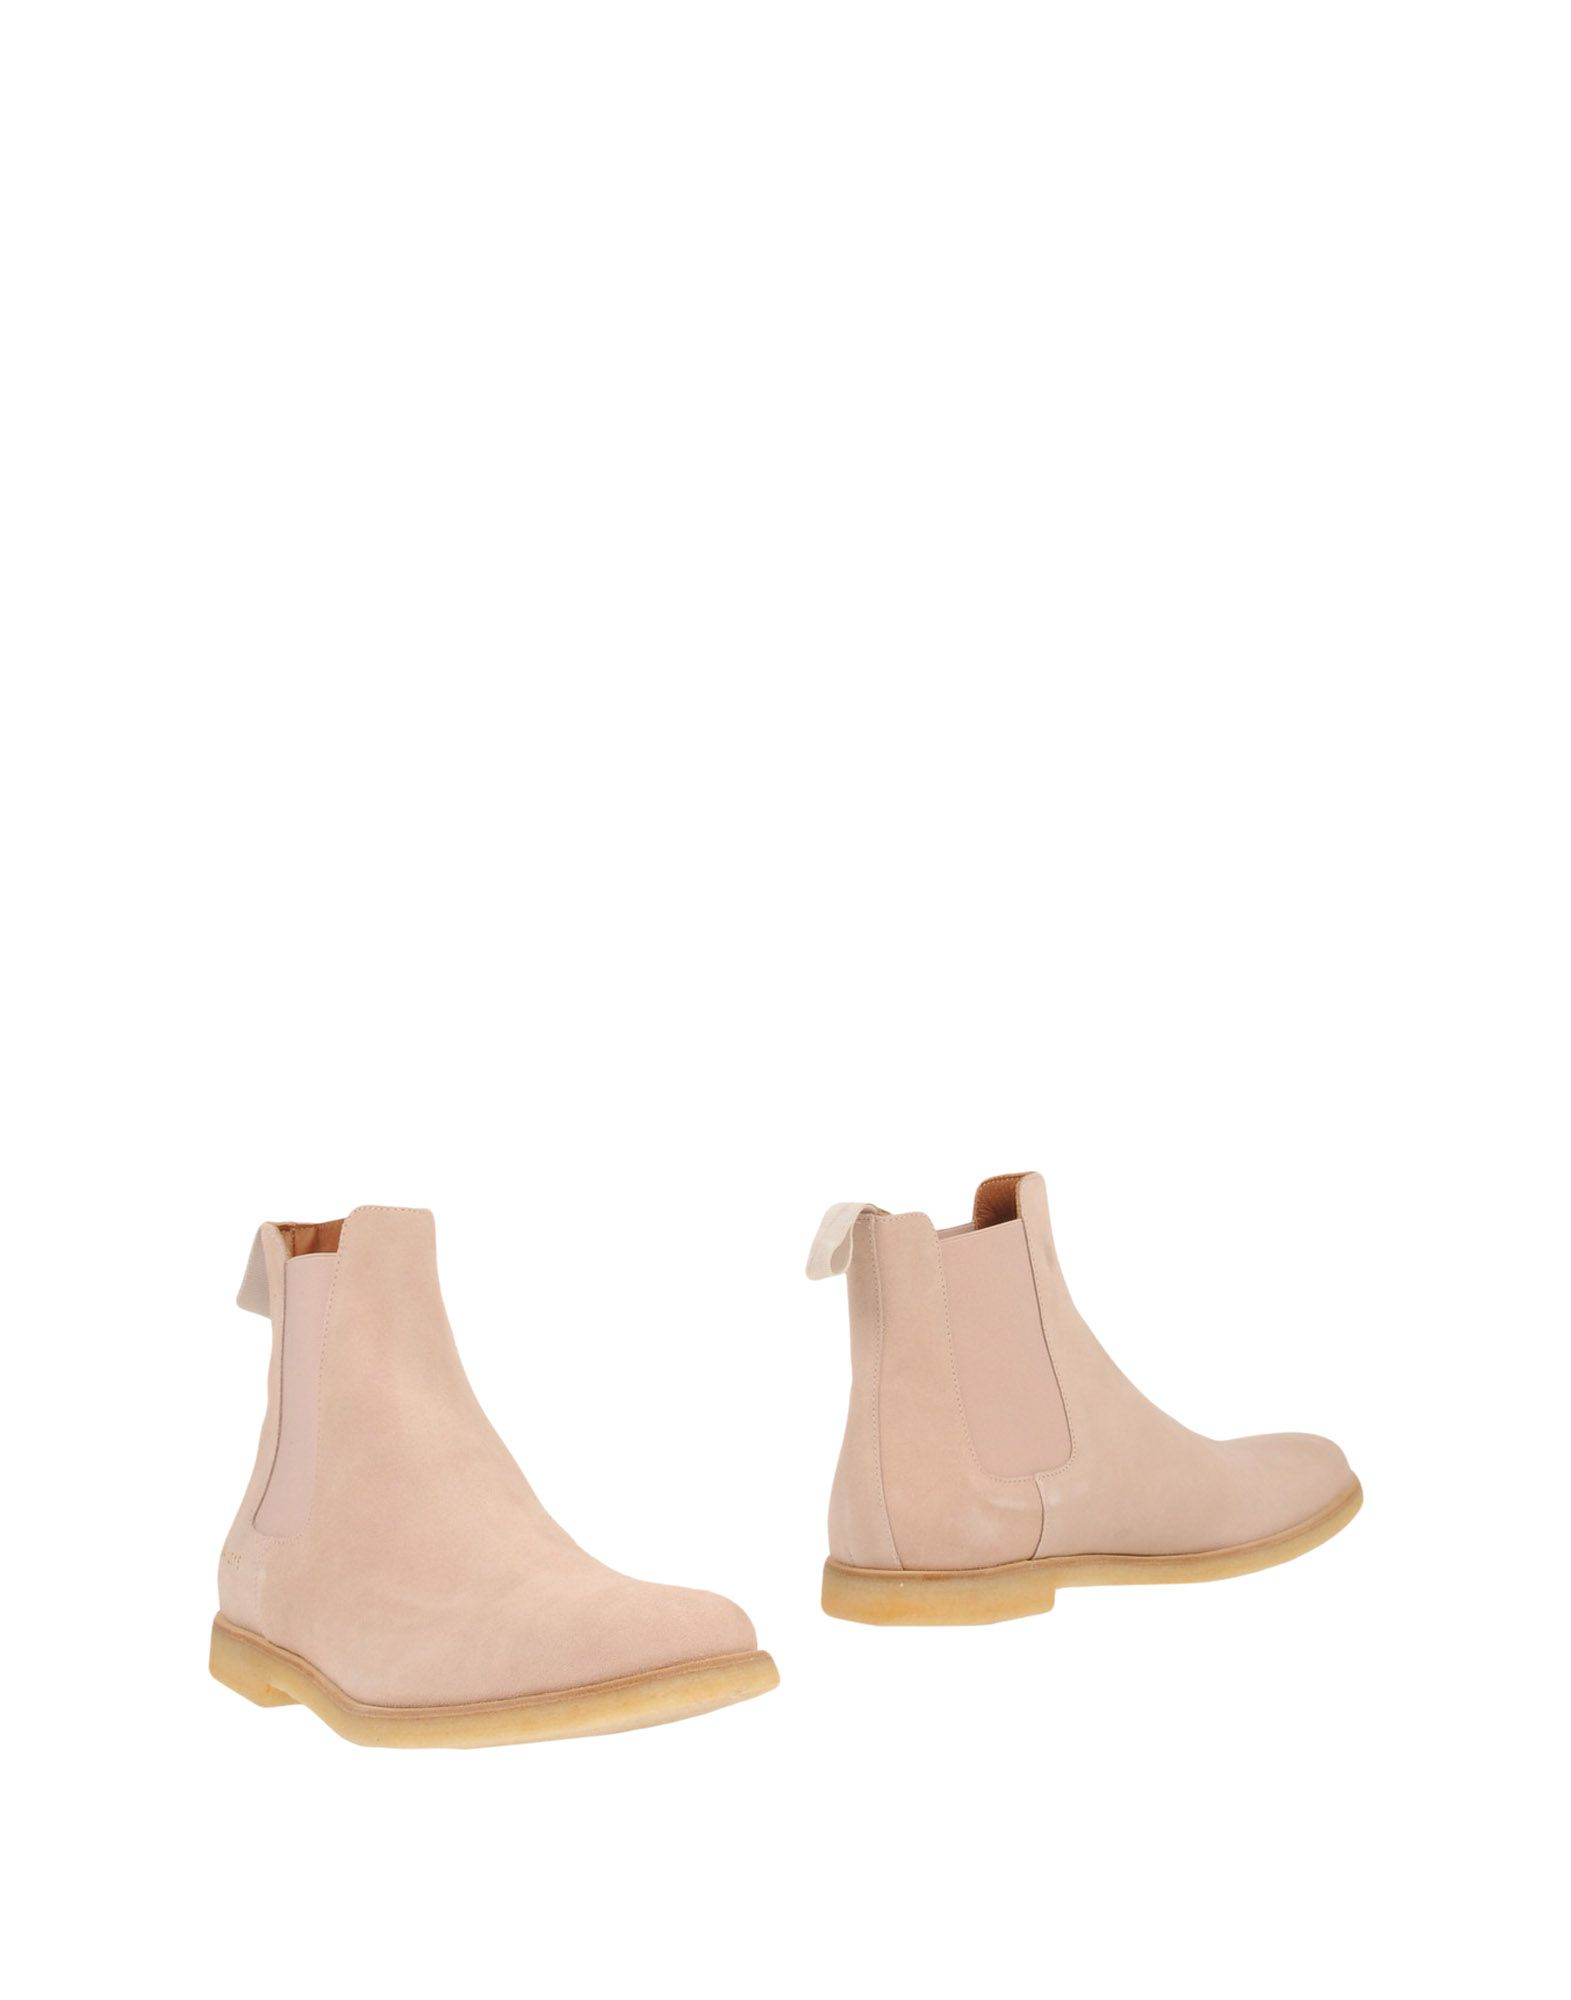 Common Common Projects Boots - Men Common Common Projects Boots online on  United Kingdom - 11405367UK 09a940